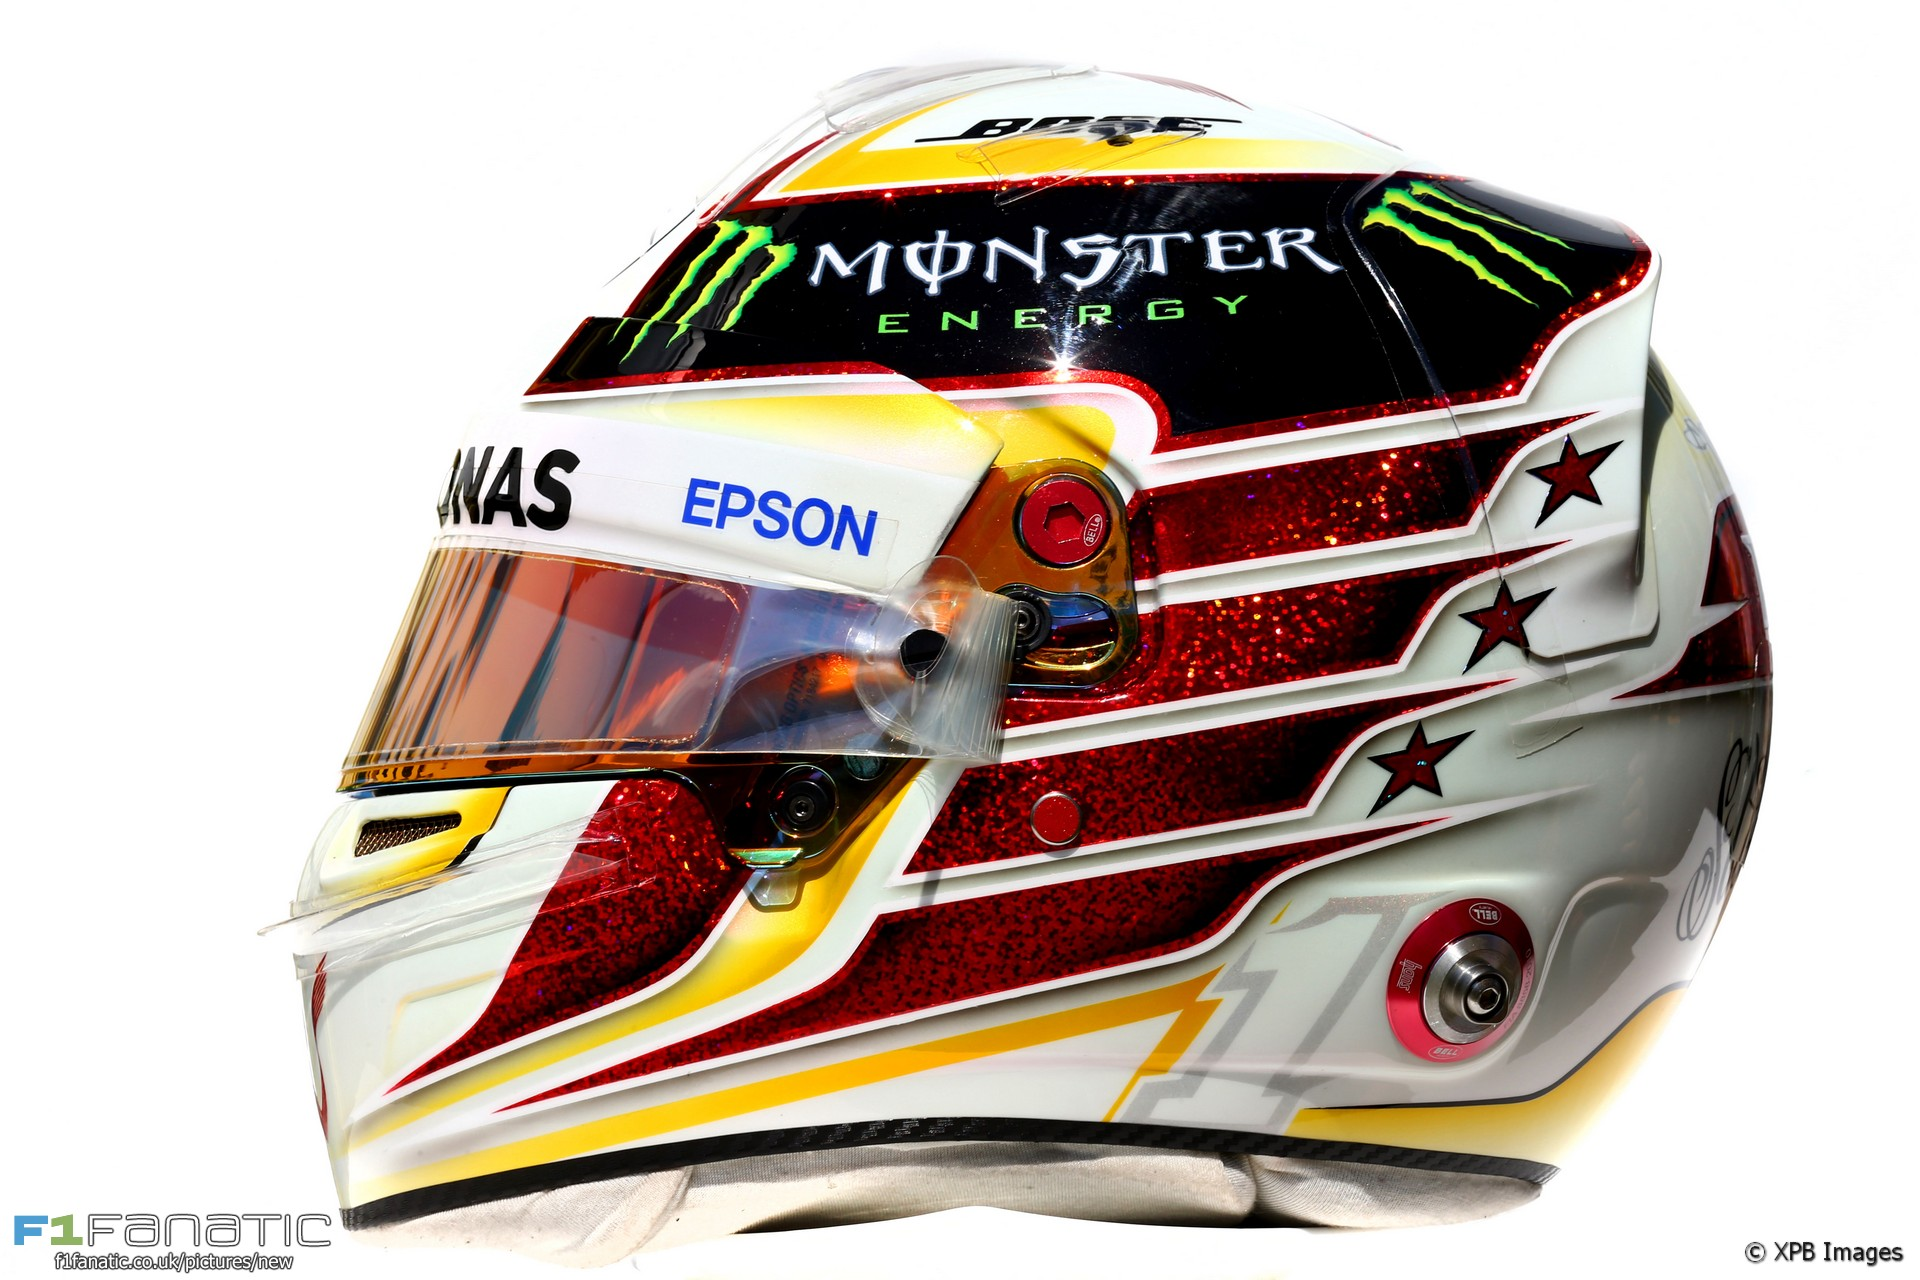 lewis hamilton helmet 2016 f1 fanatic. Black Bedroom Furniture Sets. Home Design Ideas